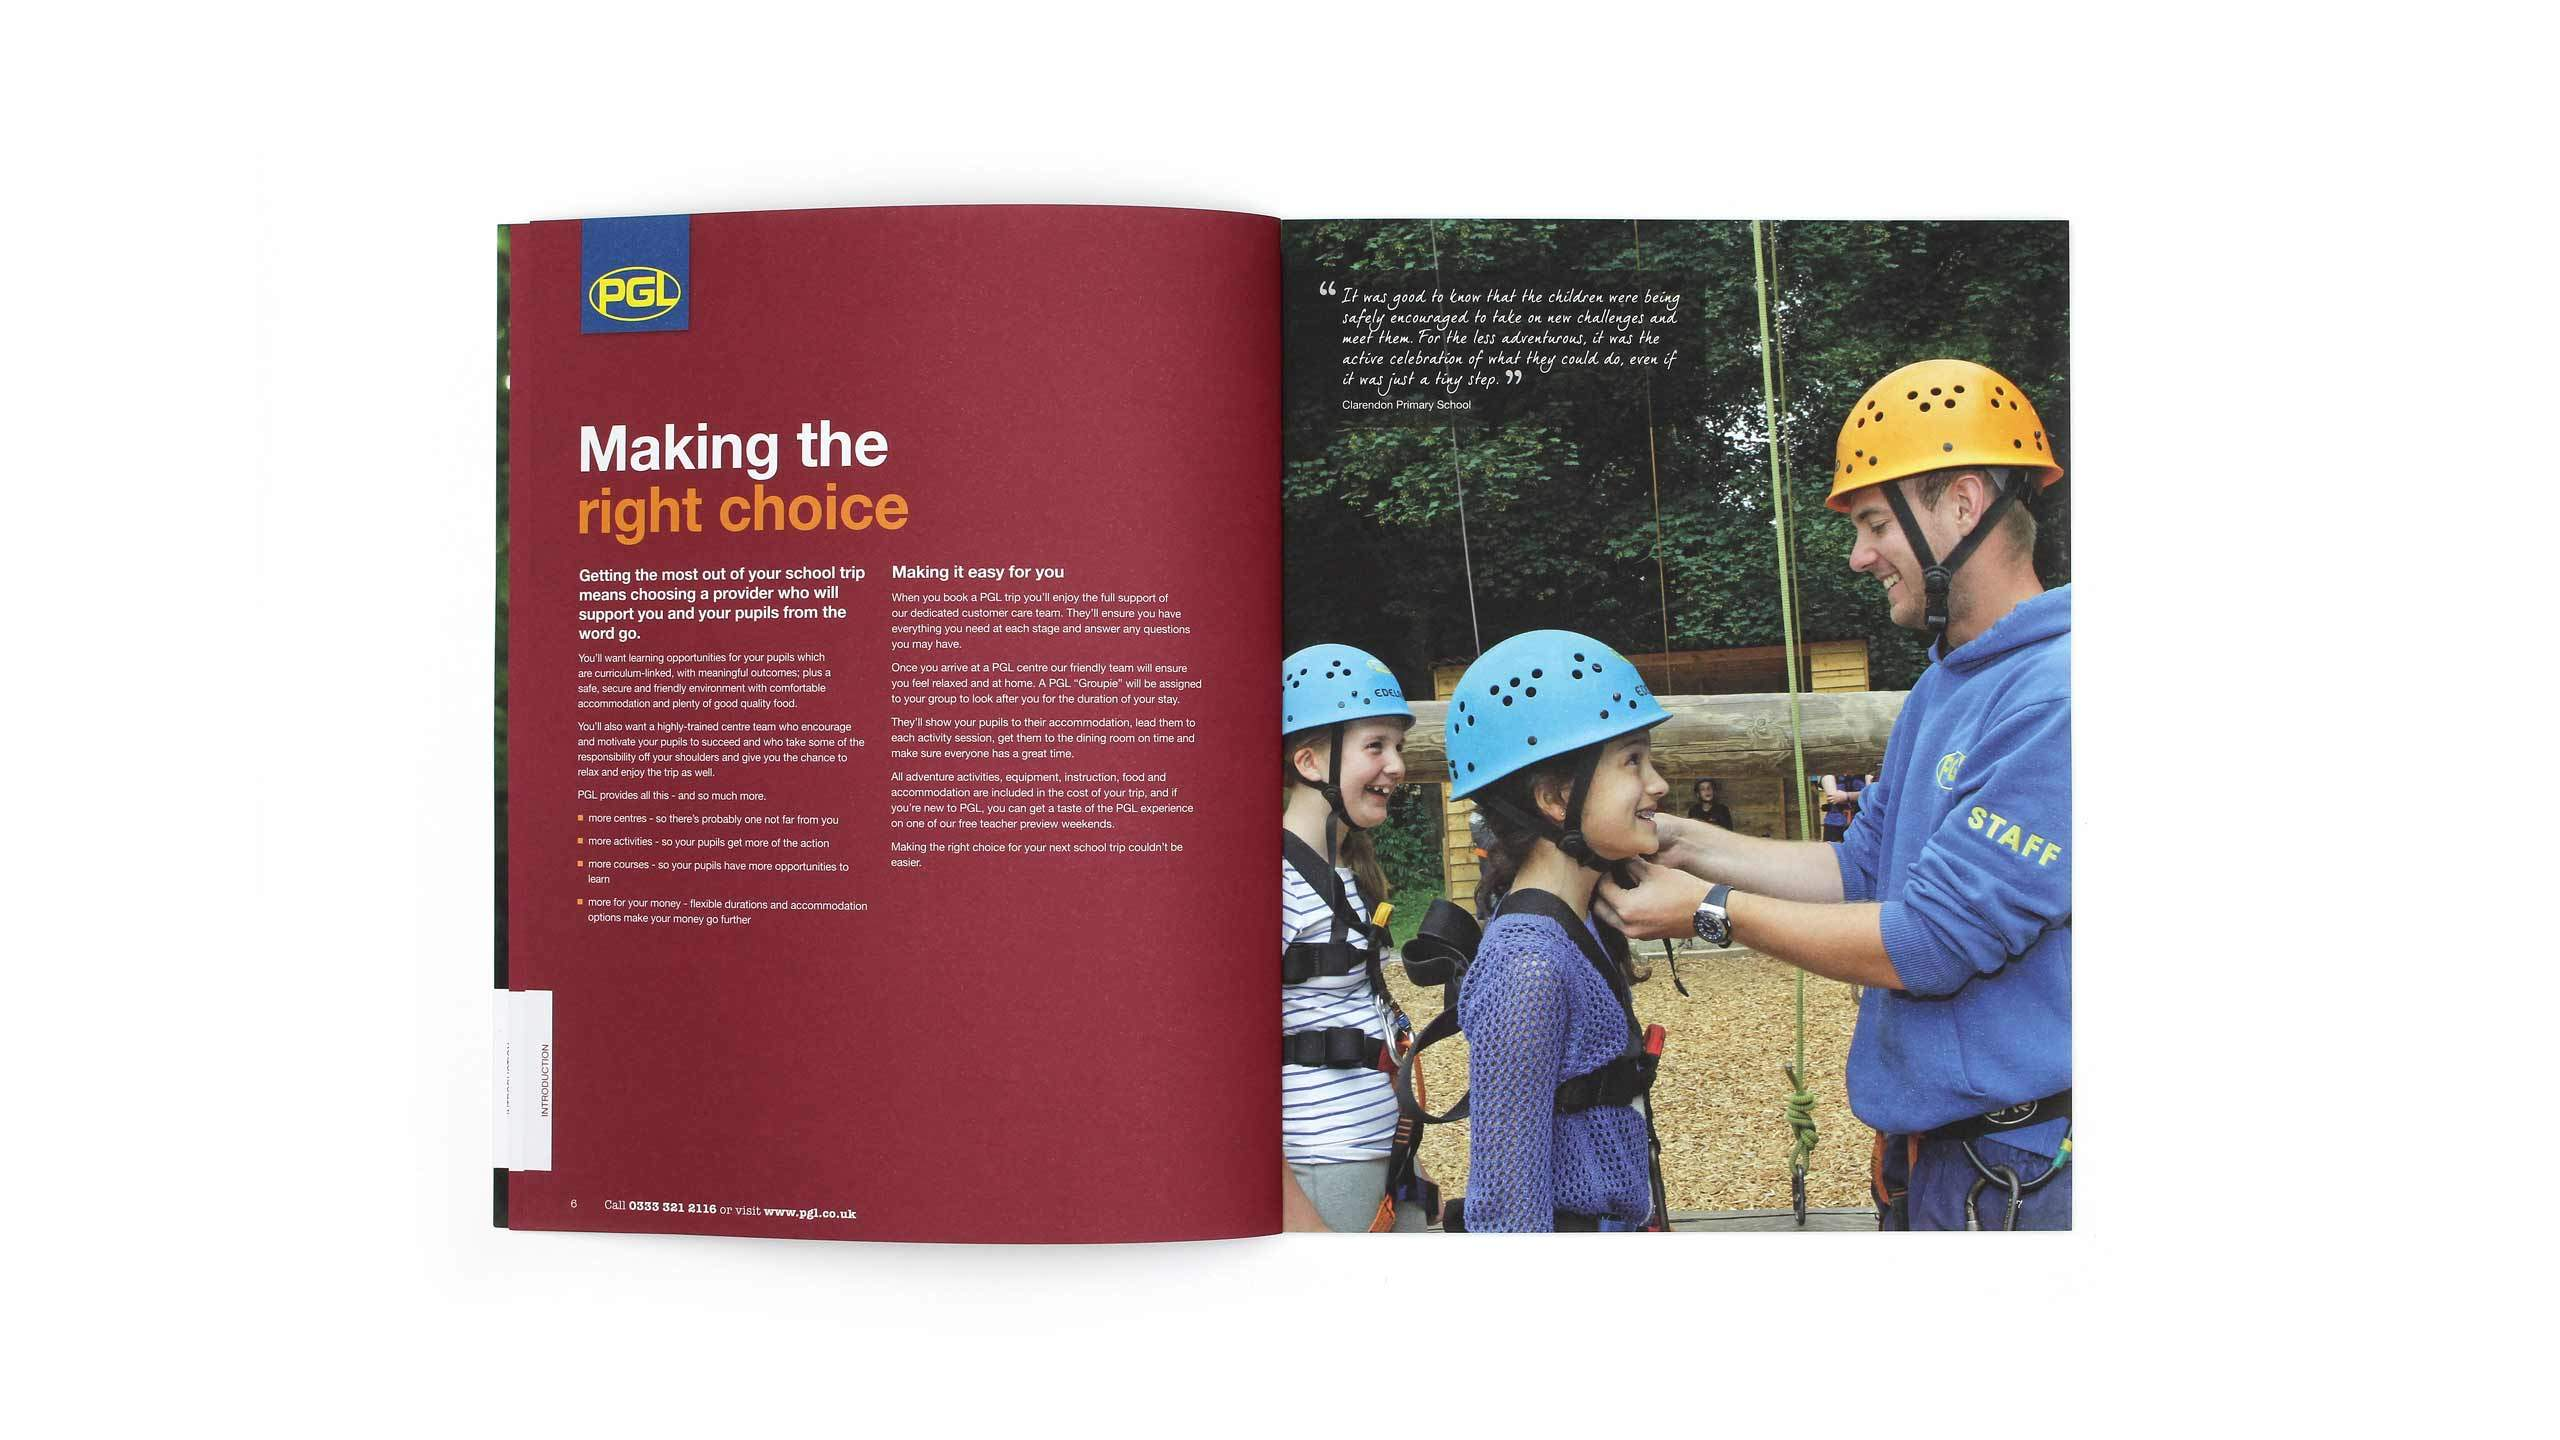 school adventure brochure design making right choice pages pgl travel